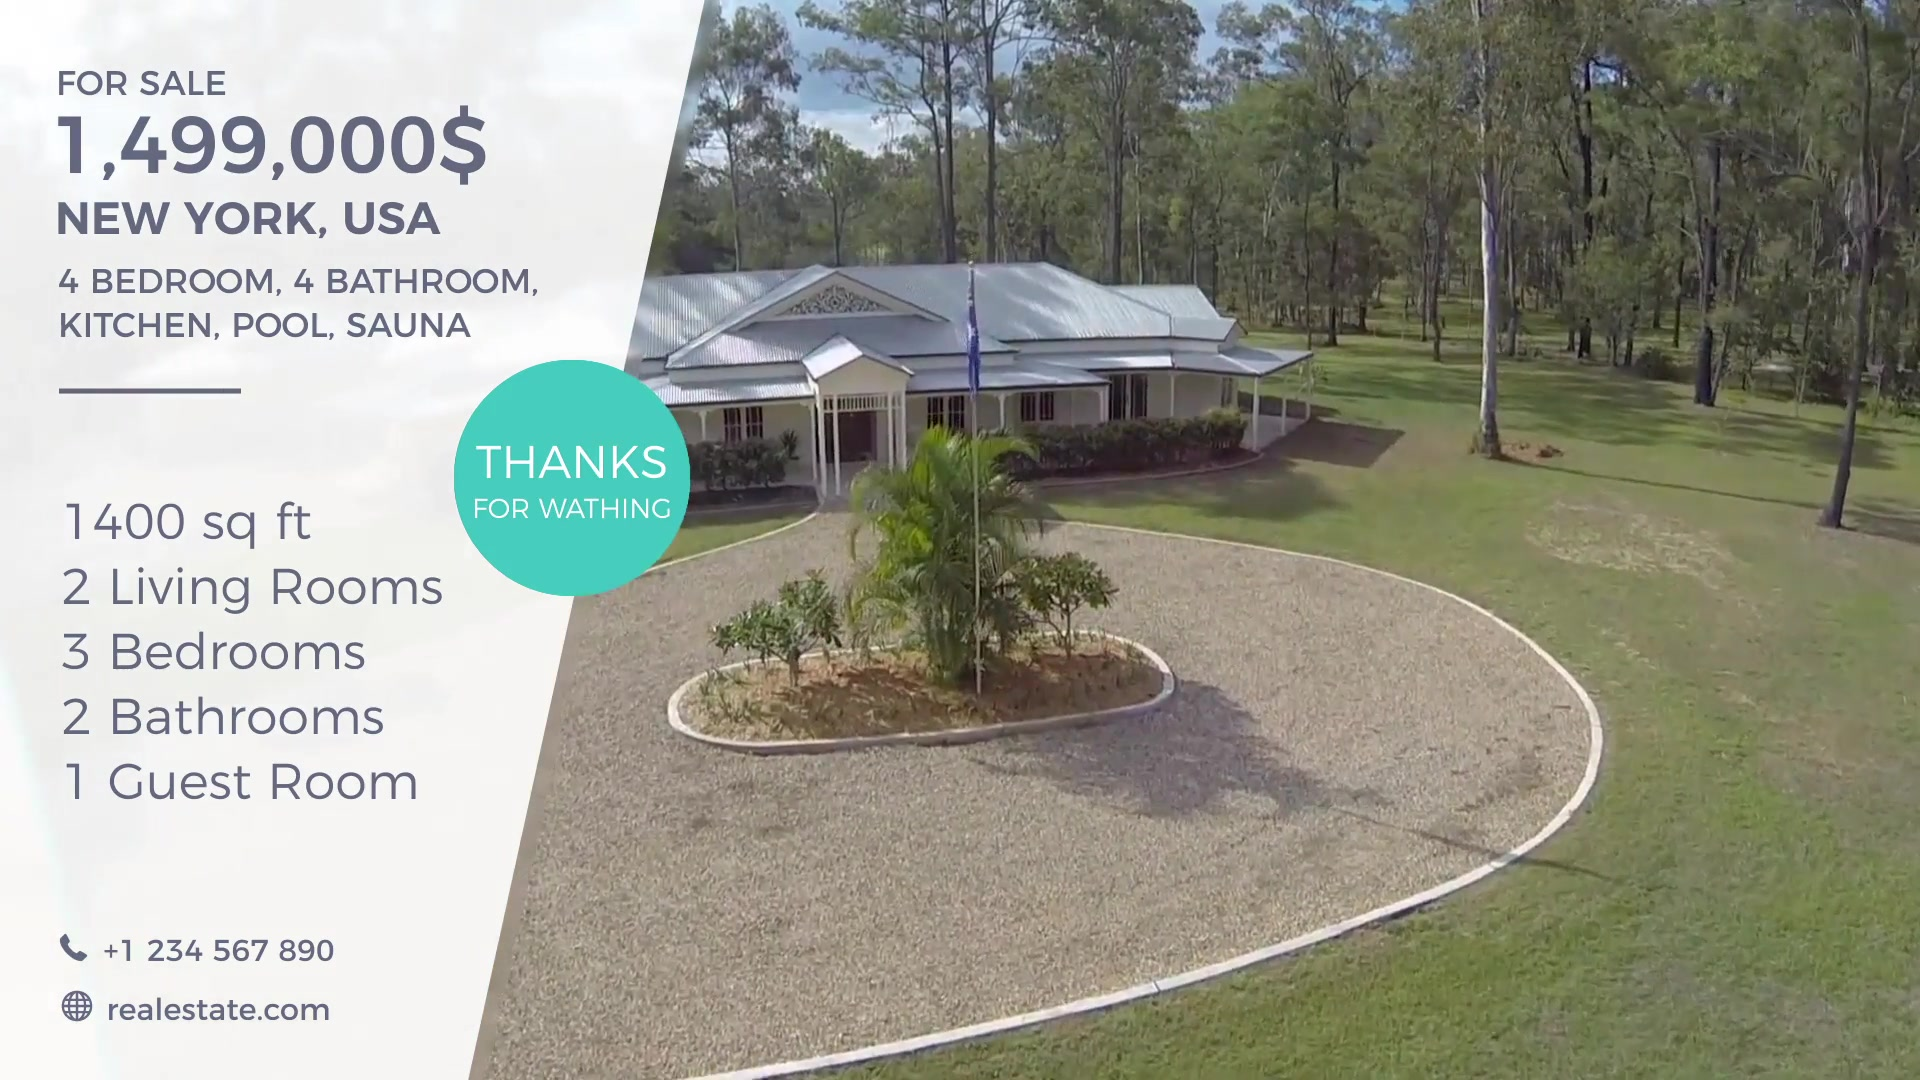 Real Estate - Download Videohive 19700701